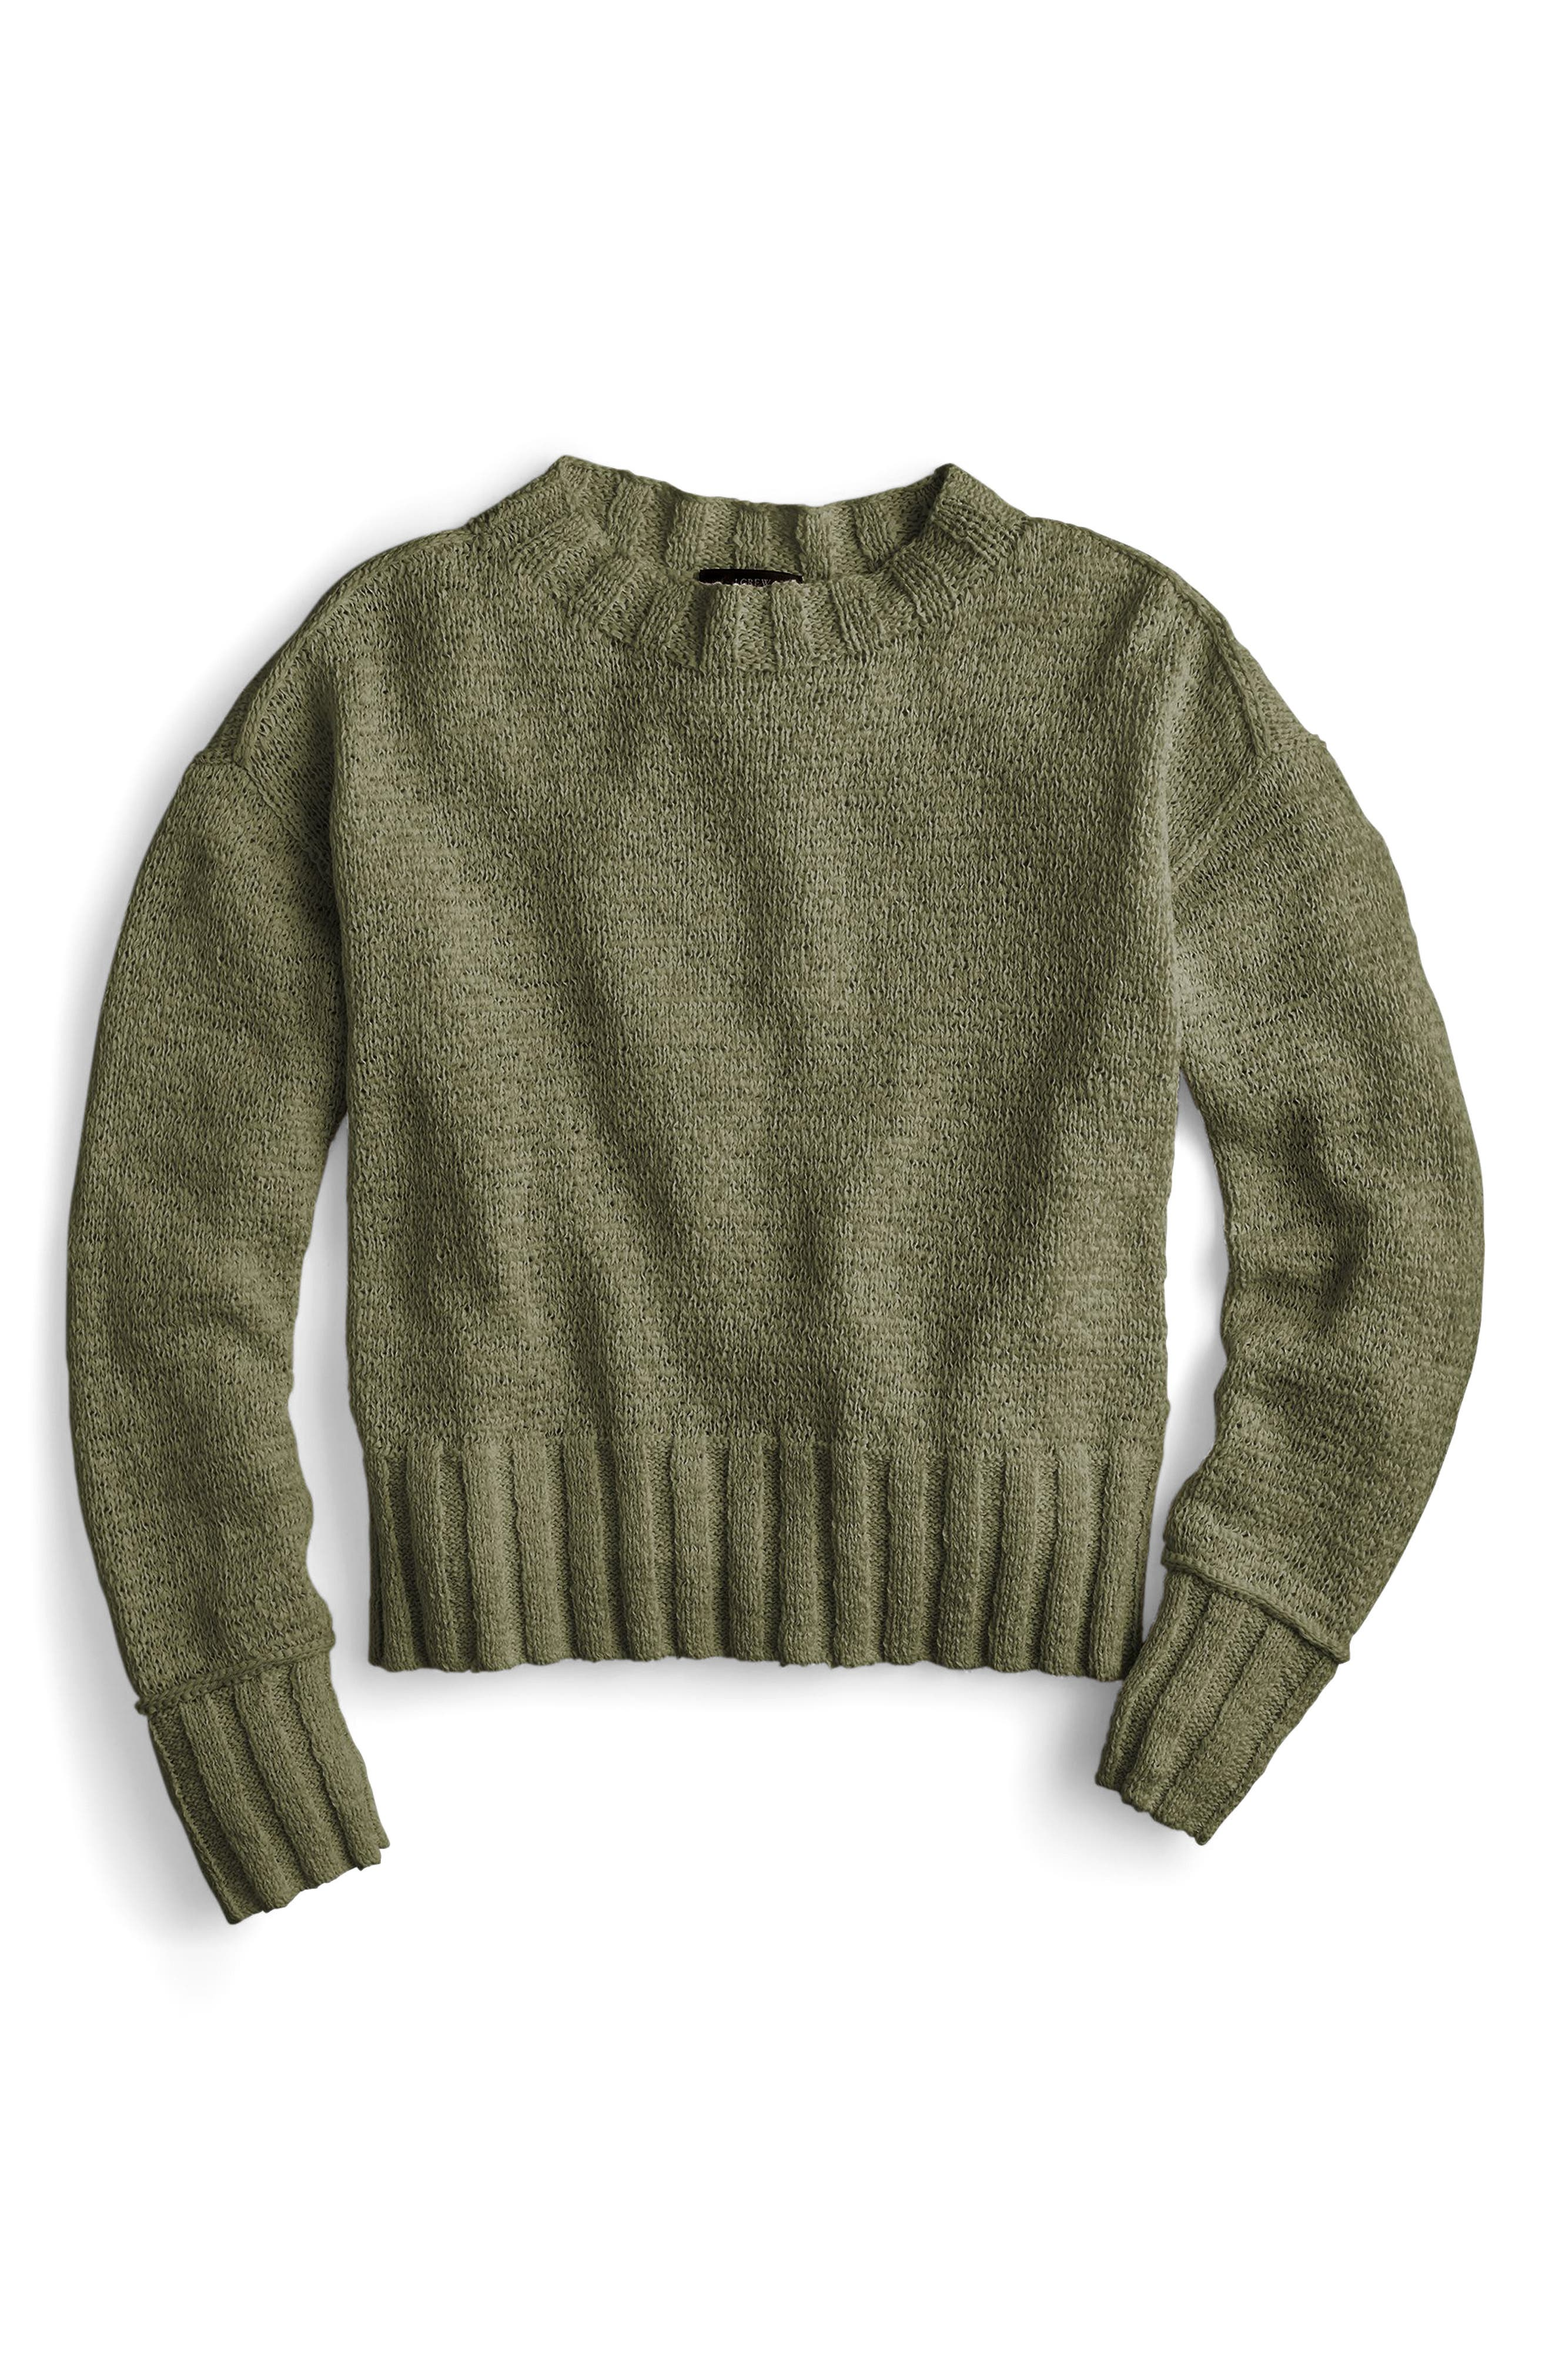 Erica Heathered Cotton Wide Rib Crewneck Sweater,                             Alternate thumbnail 3, color,                             Loden Green